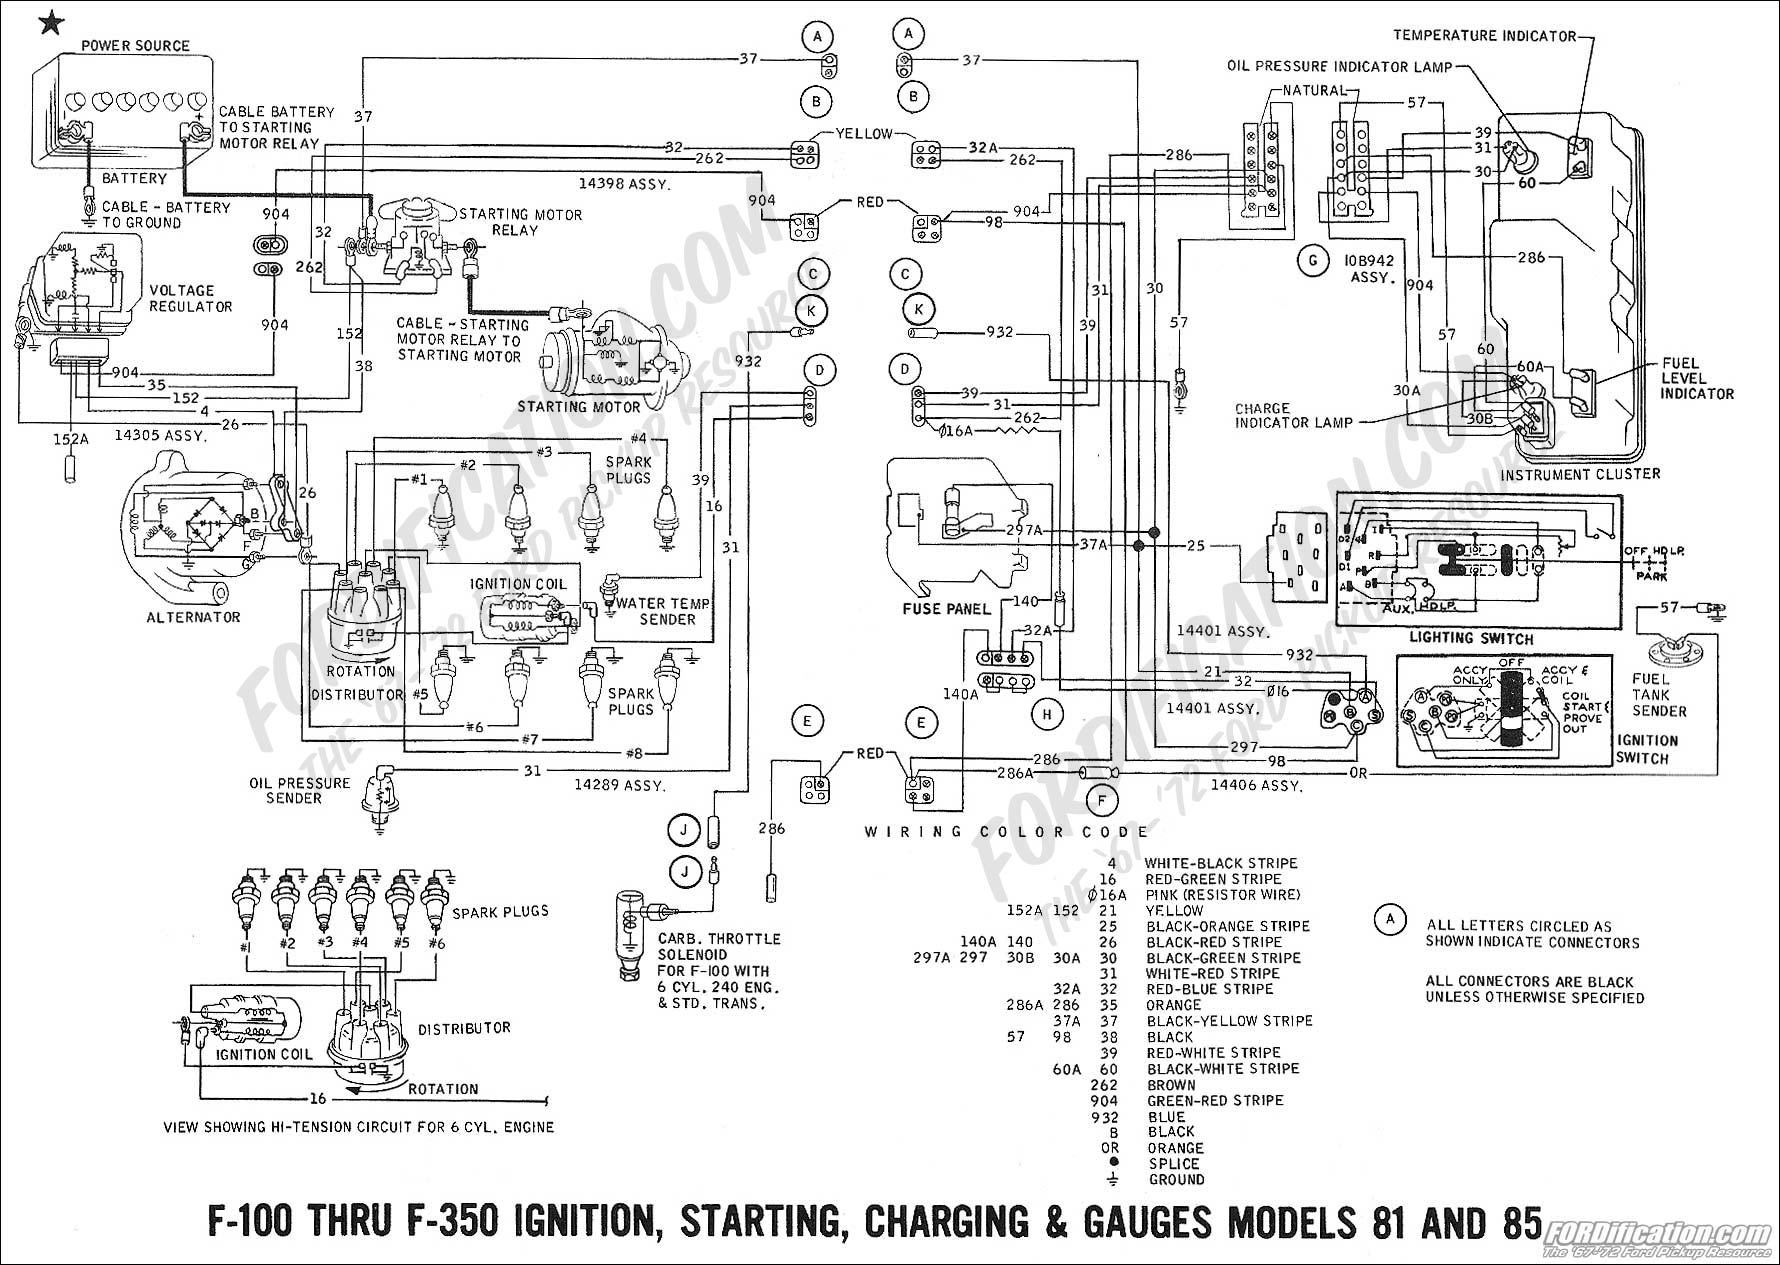 f350 wiring diagram f350 image wiring diagram 1990 ford truck wiring diagram 1990 wiring diagrams on f350 wiring diagram